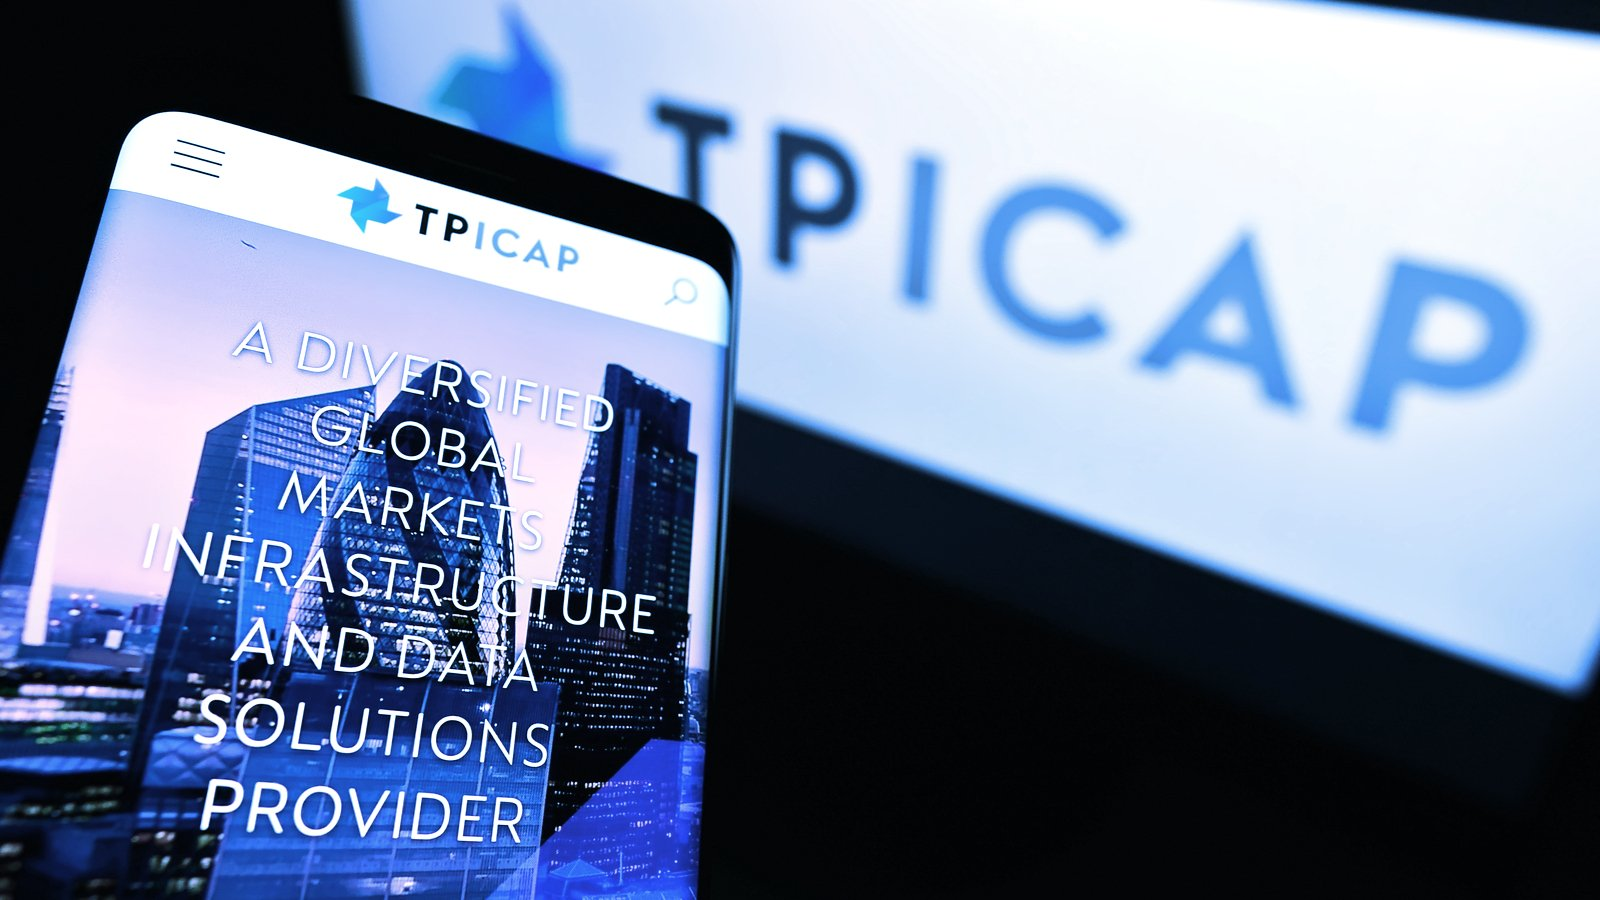 TP ICAP, Fidelity and Standard Chartered To Launch Crypto Trading Platform